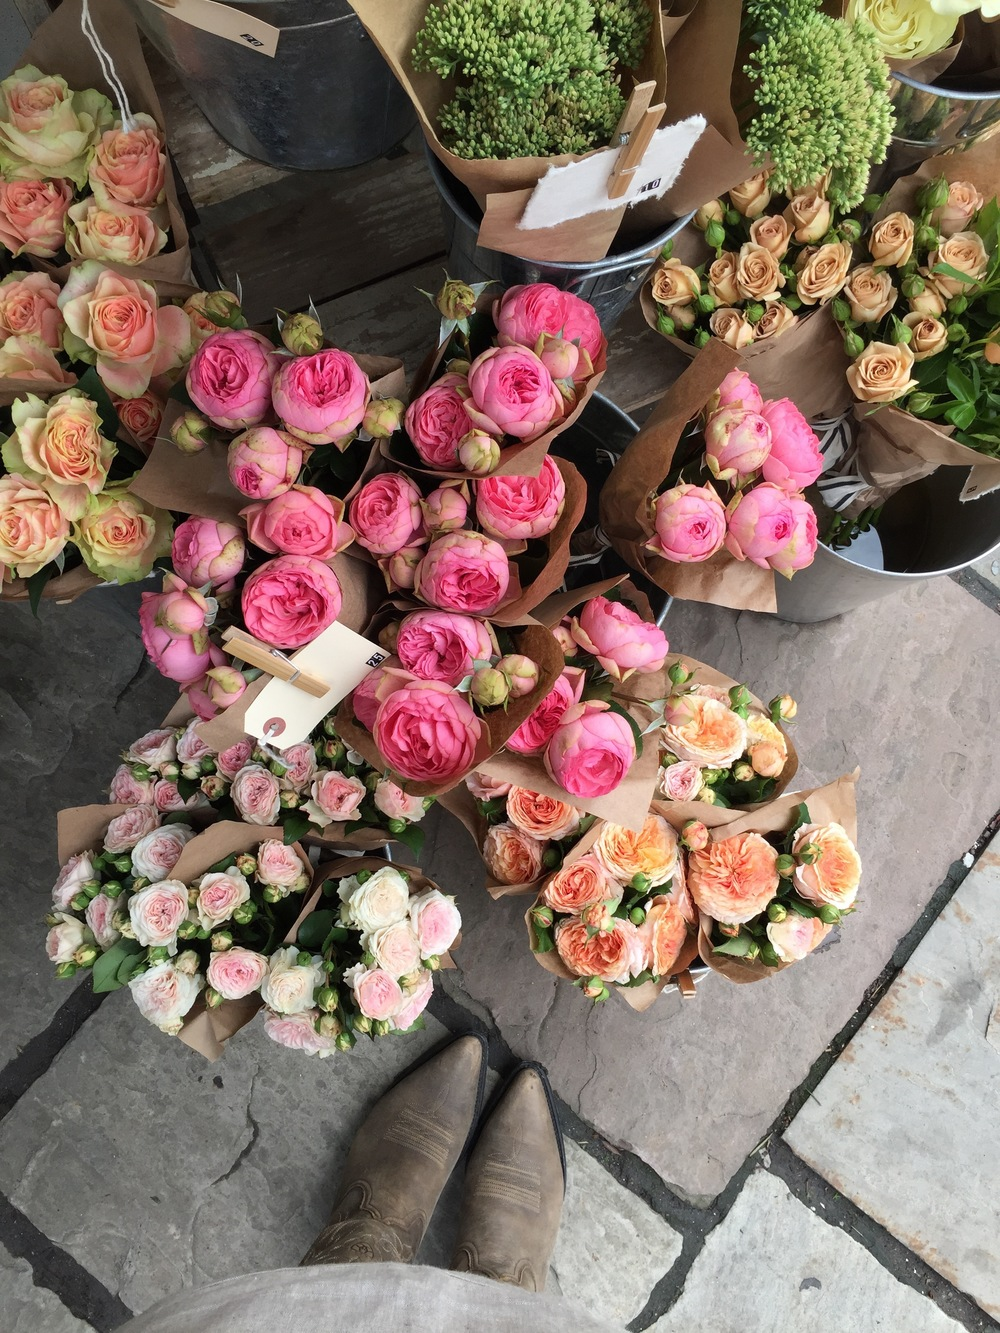 Check out these locally grown garden roses at the Sweet Woodruff Flower Cart at the Club Monaco Market, Avenue and Bloor Street W, Toronto. They look pretty cute with my cowboy boots, don't you think?